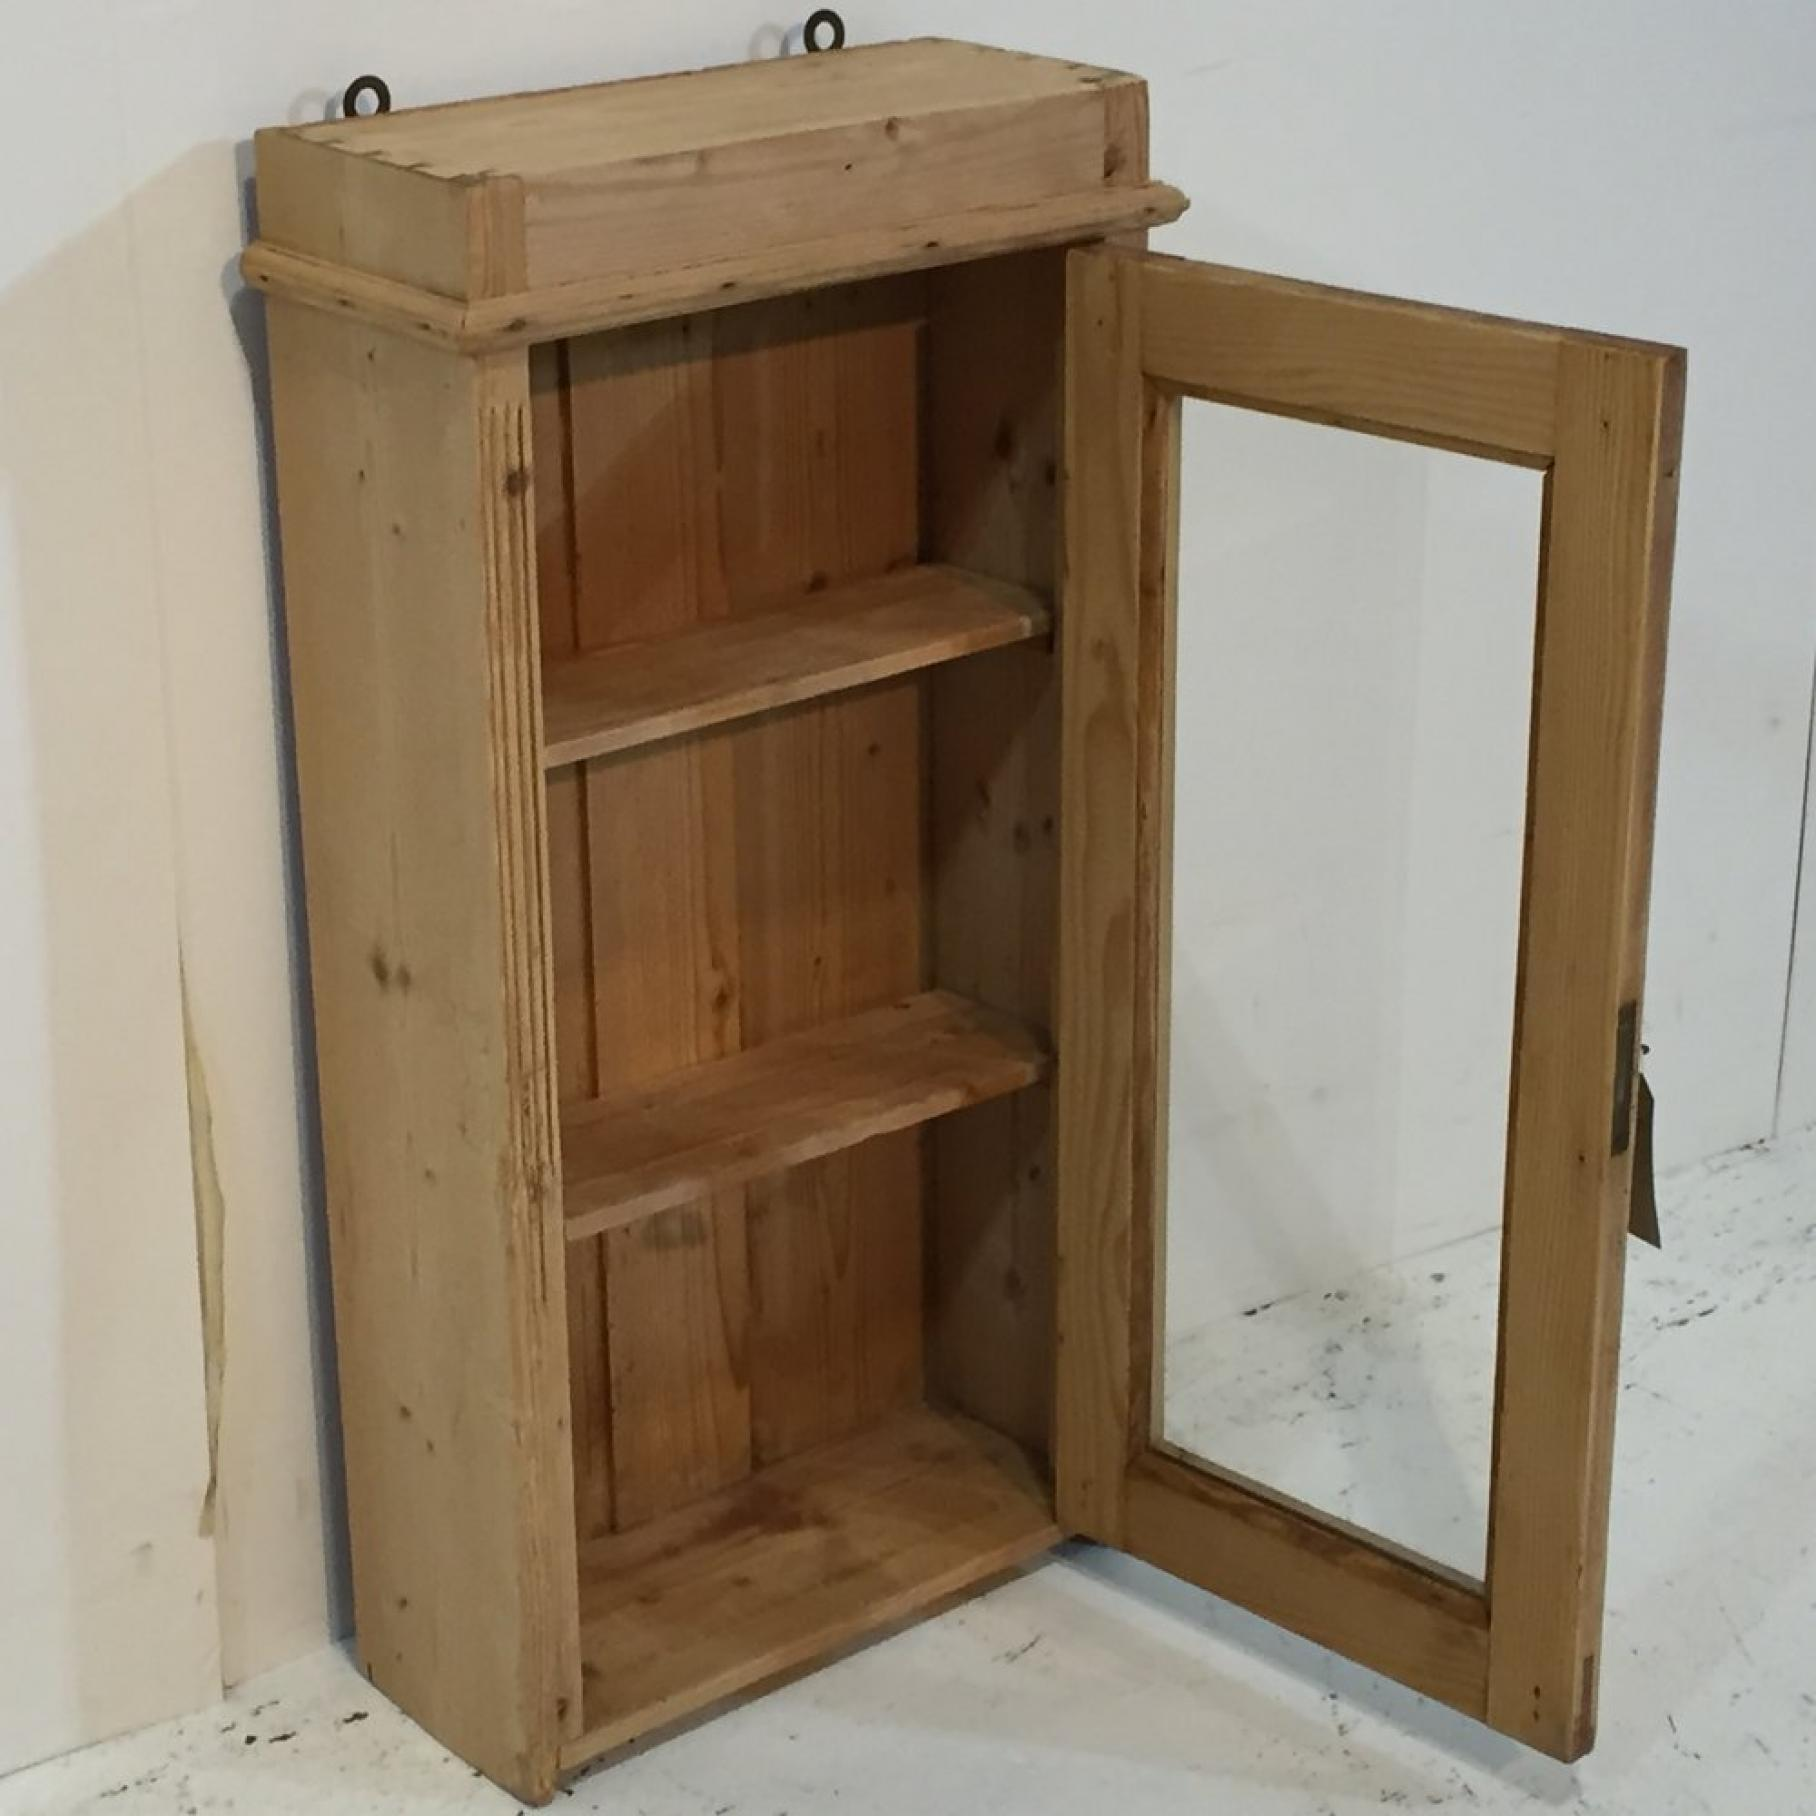 Antique Pine Bathroom Cabinets